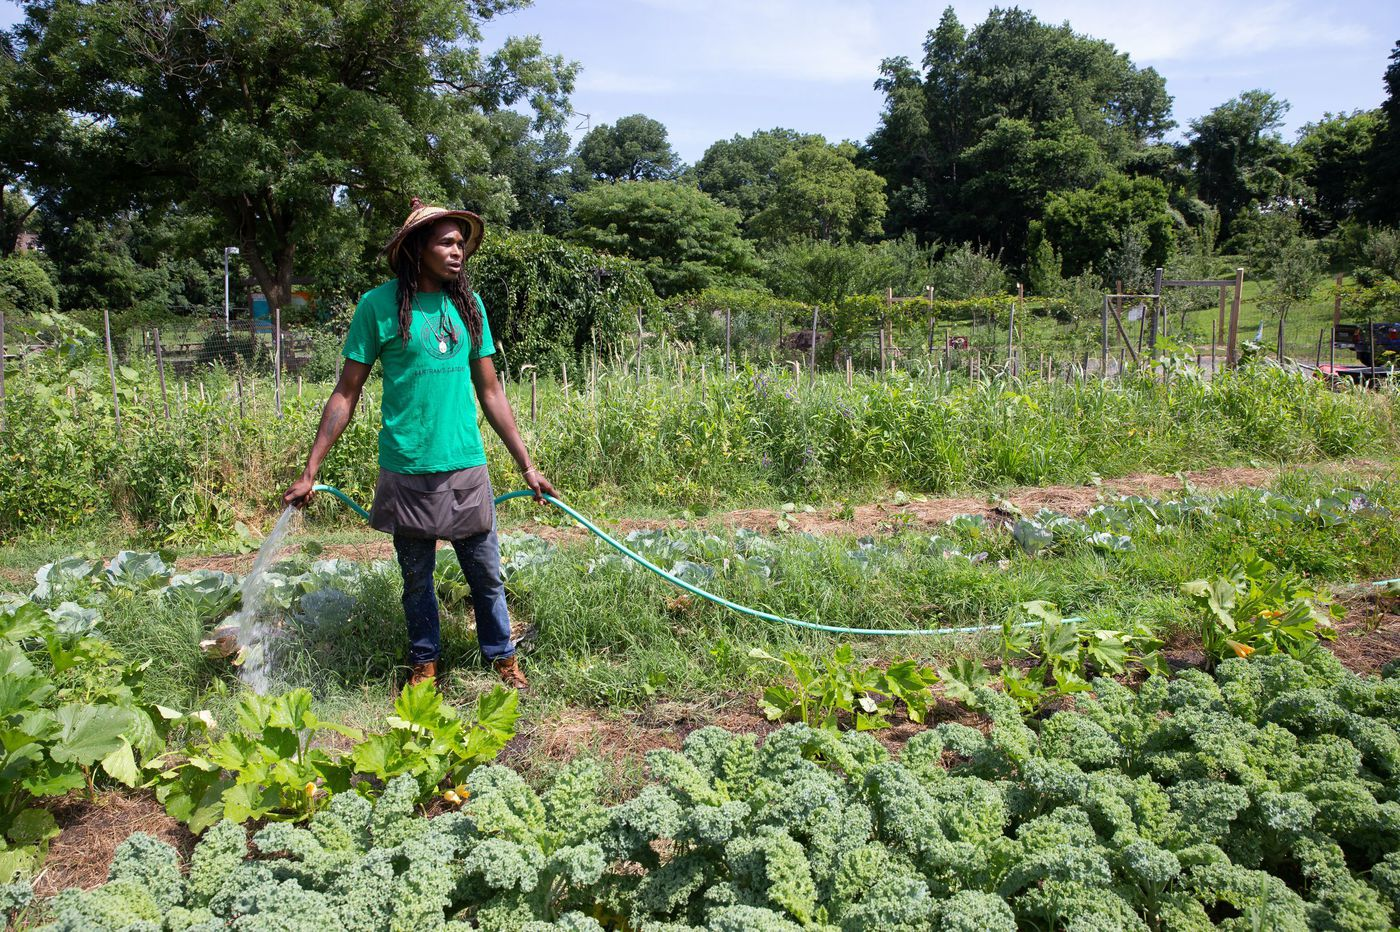 An urban farm in Philadelphia | Photo credit: Jessica Griffin, The Philadelphia Inquirer